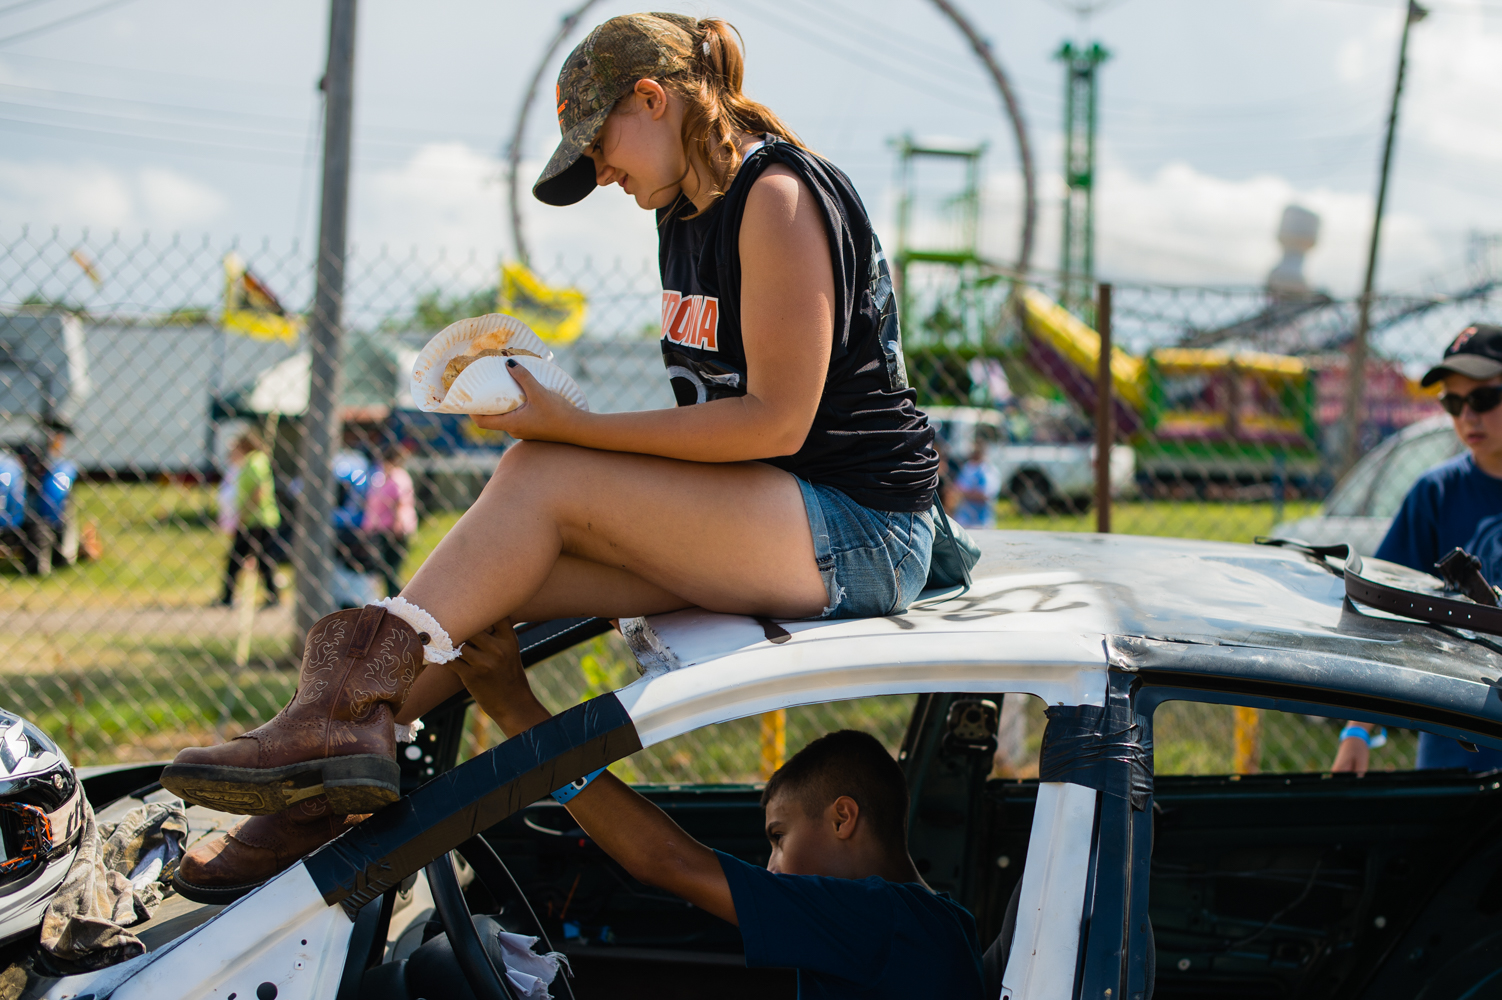 Brooke Erik, 17, hangs out on top of her cousin's demolition derby car in Dunkirk, NY,while family friend Jay Cevic flirts with her.